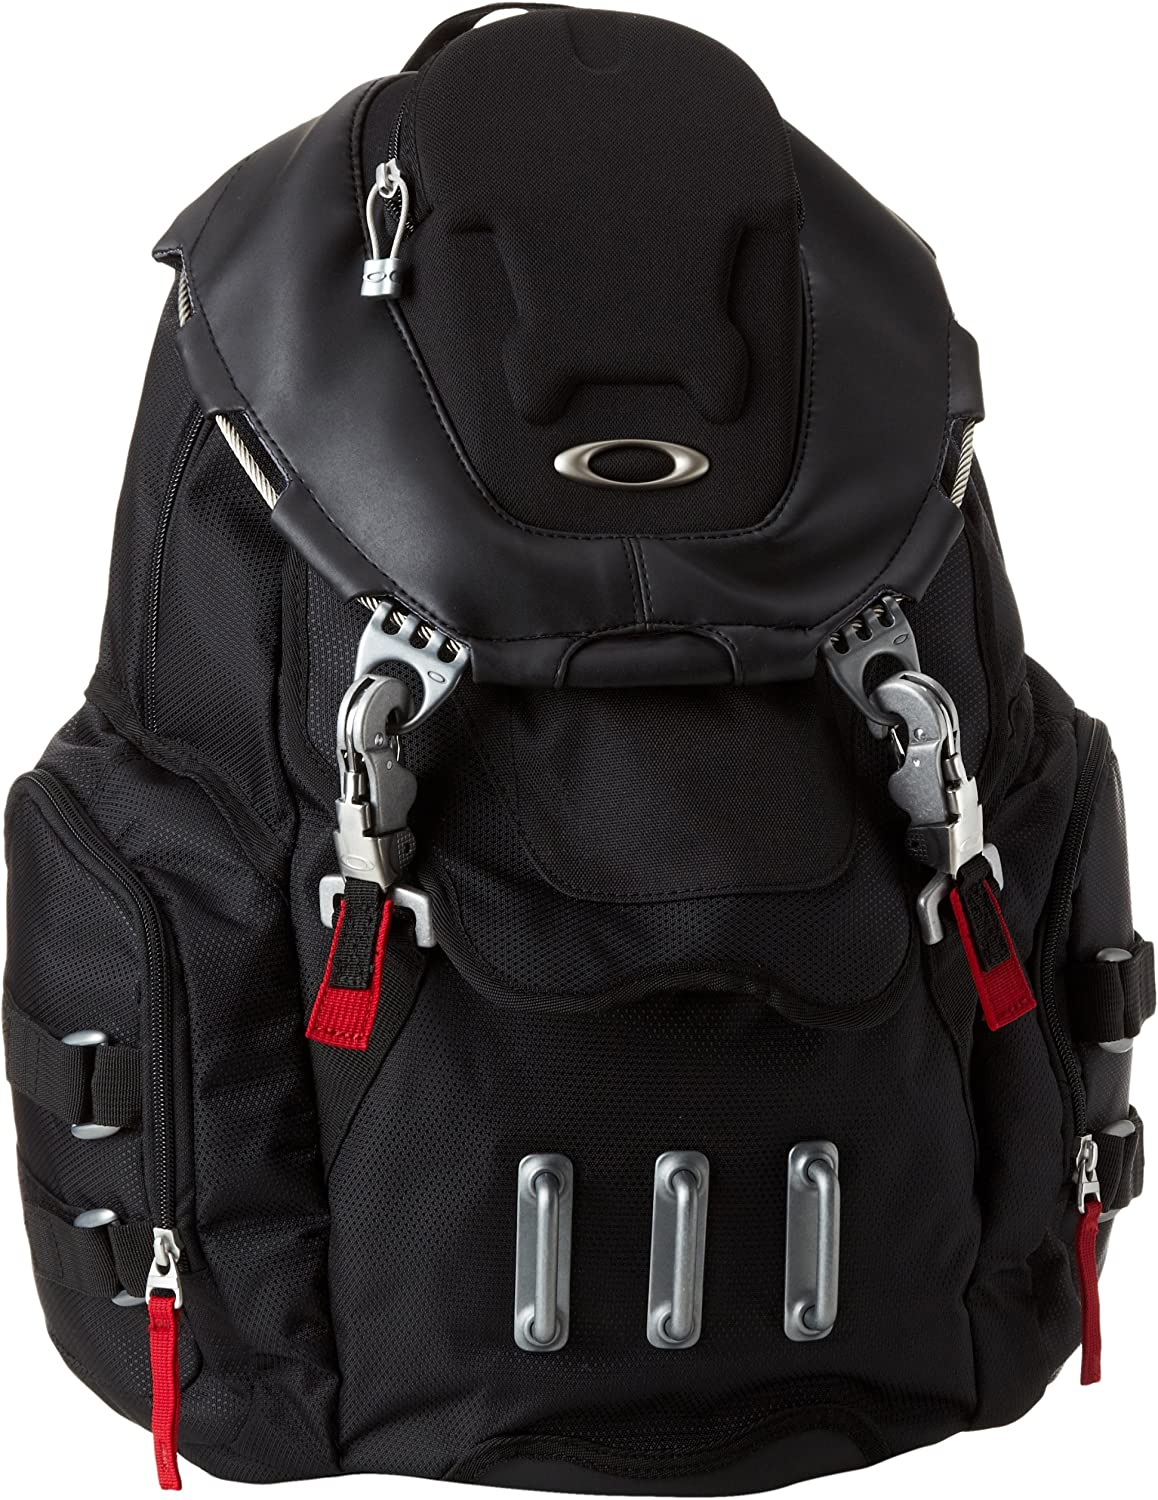 Oakley Men S Bathroom Sink Backpack Black One Size Amazon Ca Clothing Shoes Accessories